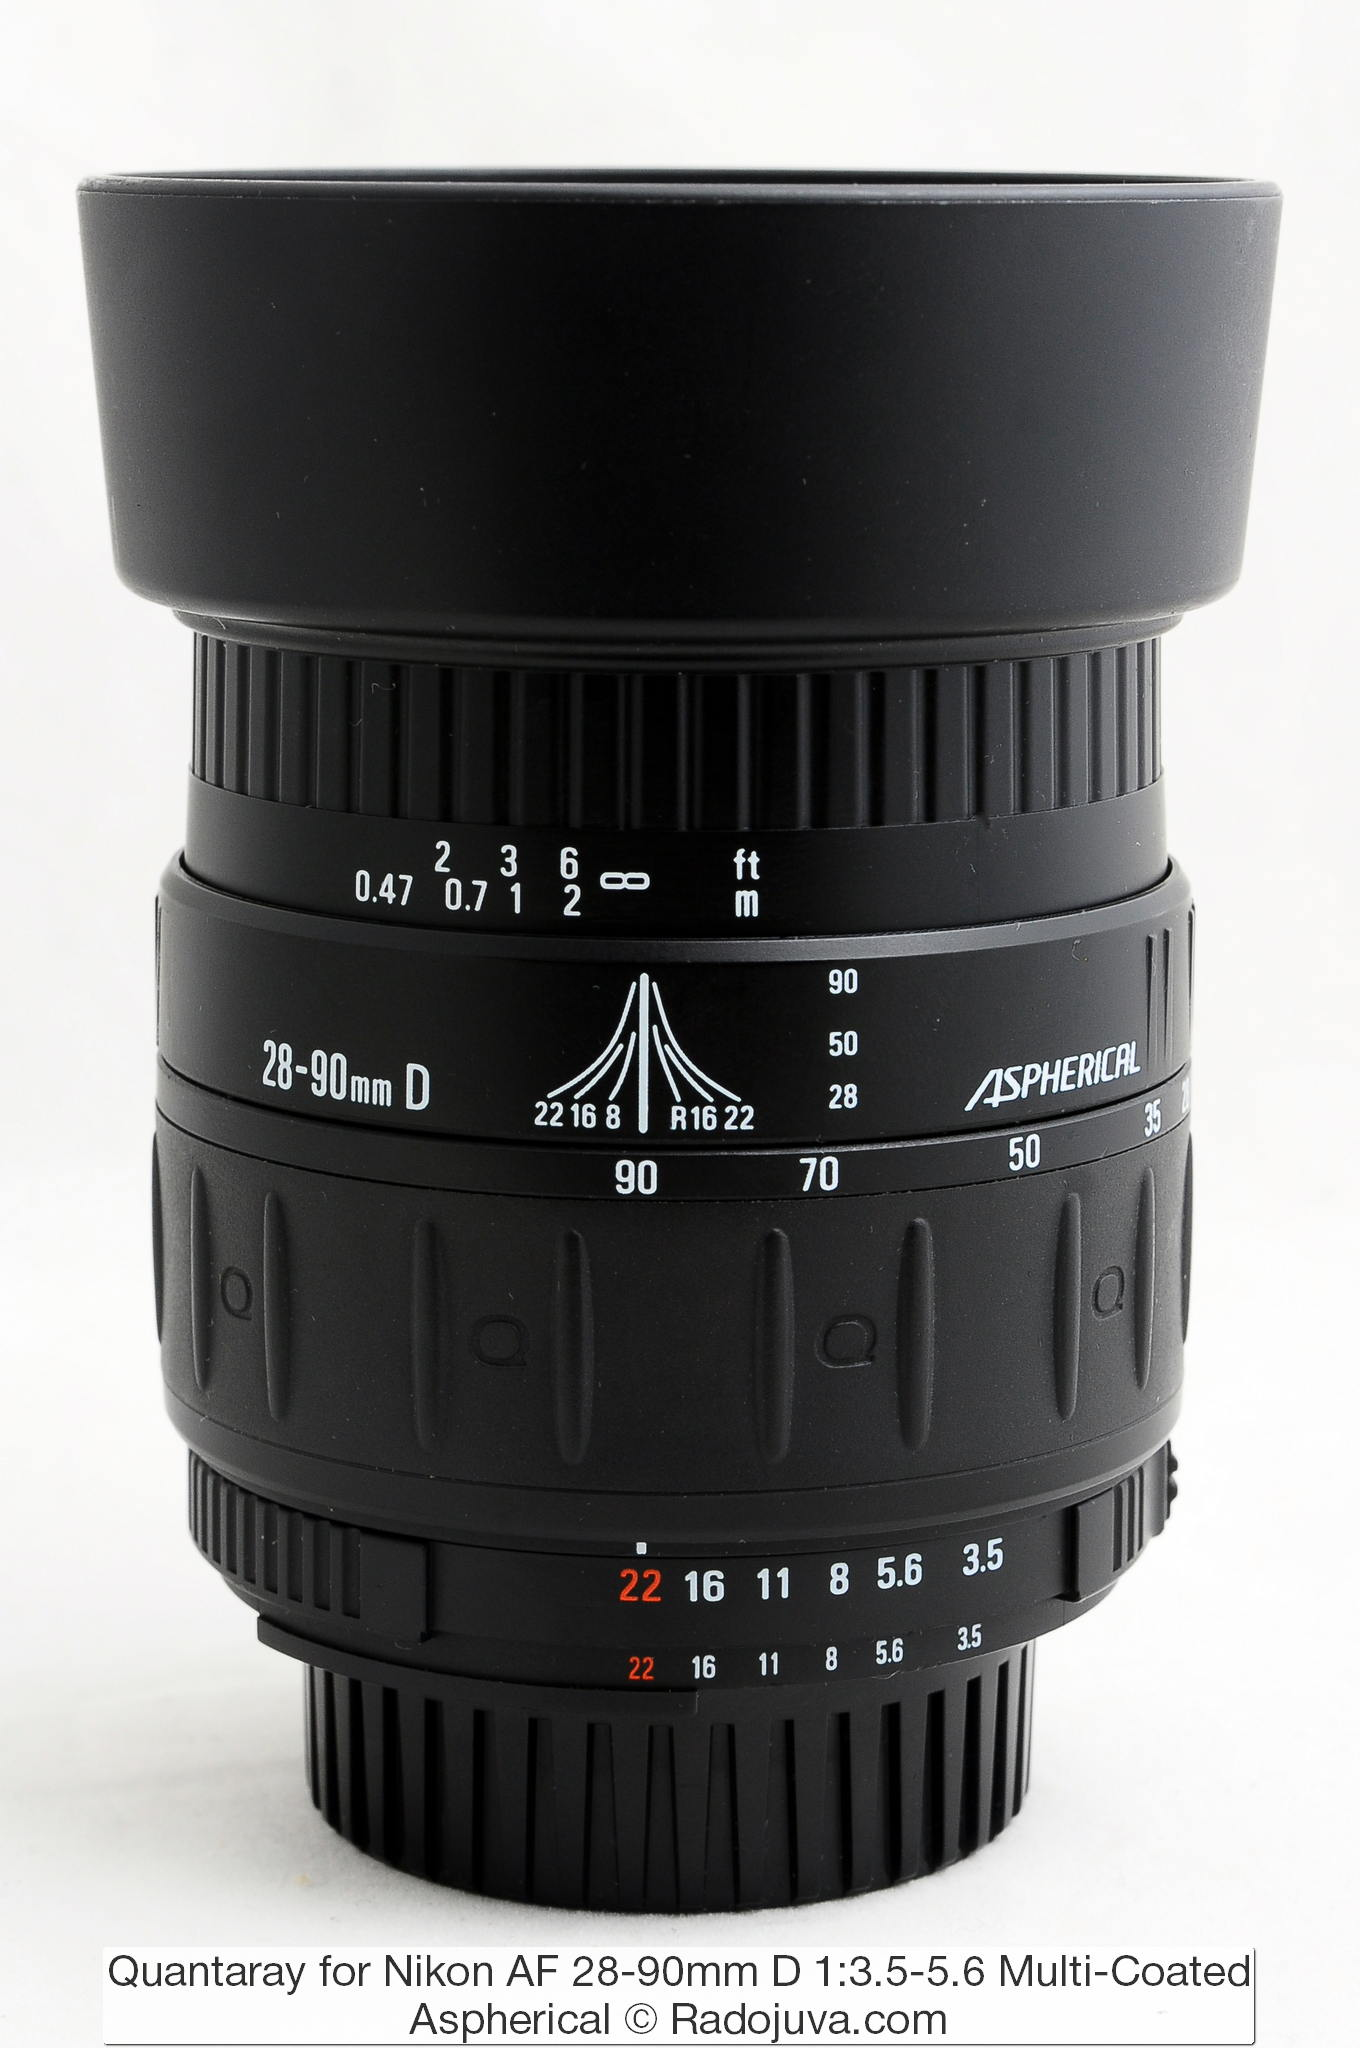 Quantaray for Nikon AF 28-90mm D 1:3.5-5.6 Multi-Coated Aspherical